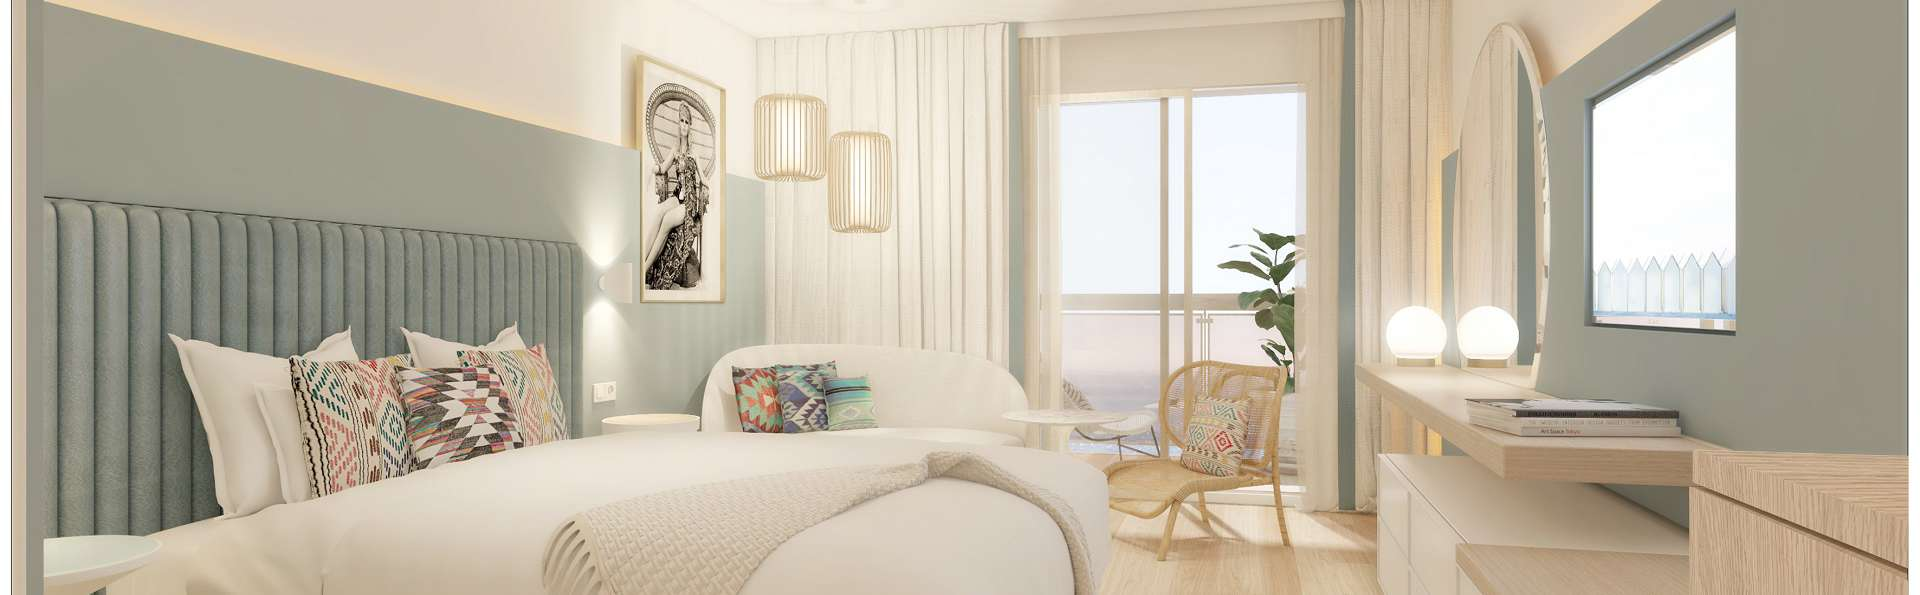 Hotel Croisette Beach Cannes MGallery By Sofitel - CHAMBRE_TEMOIN.jpg